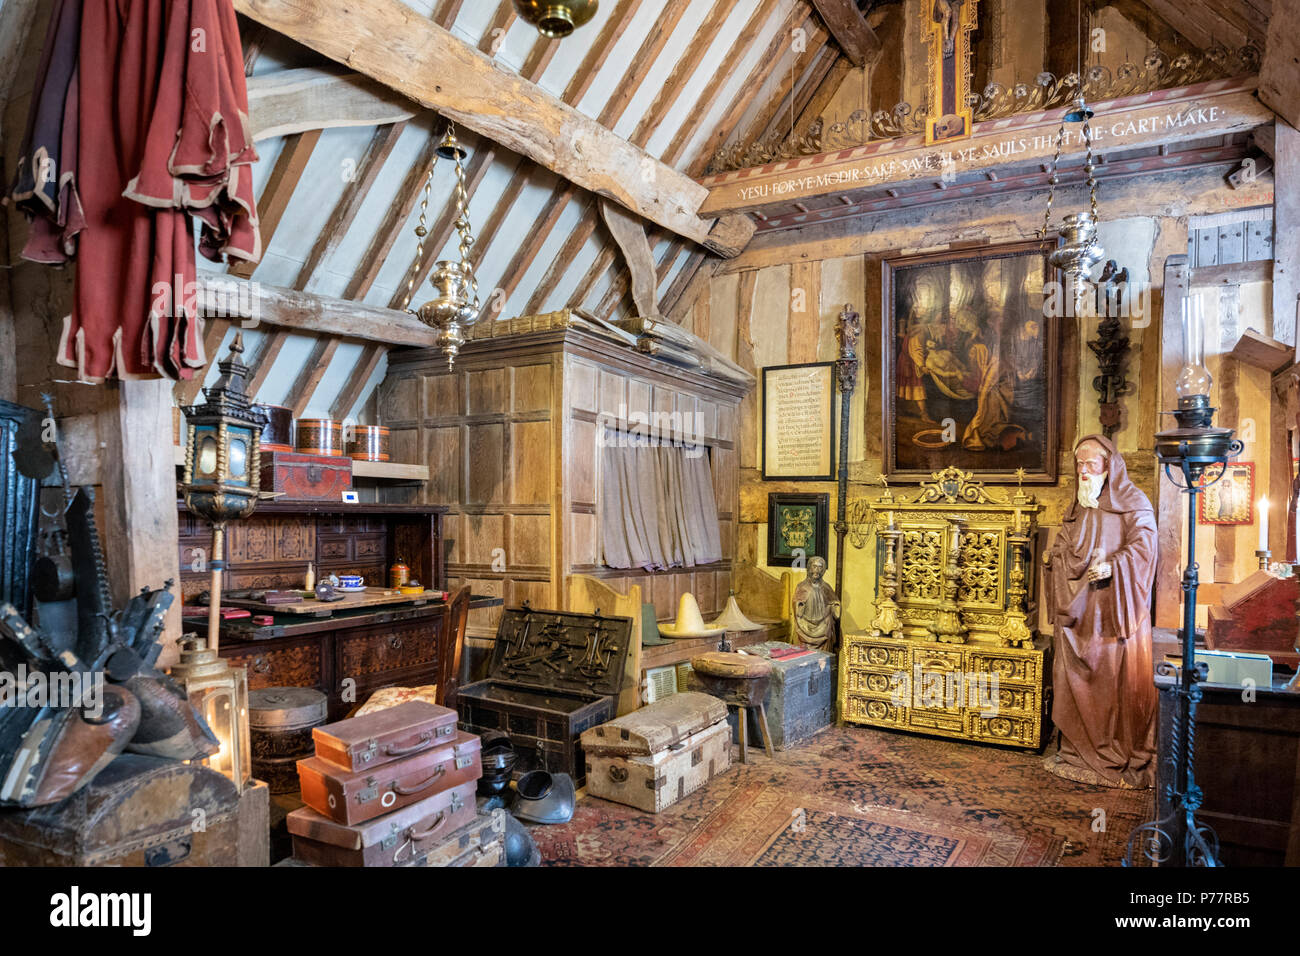 Charles Wades bedroom in the Priests House at Snowshill Manor in the Cotswold village of Snowshill, Gloucestershire UK Stock Photo